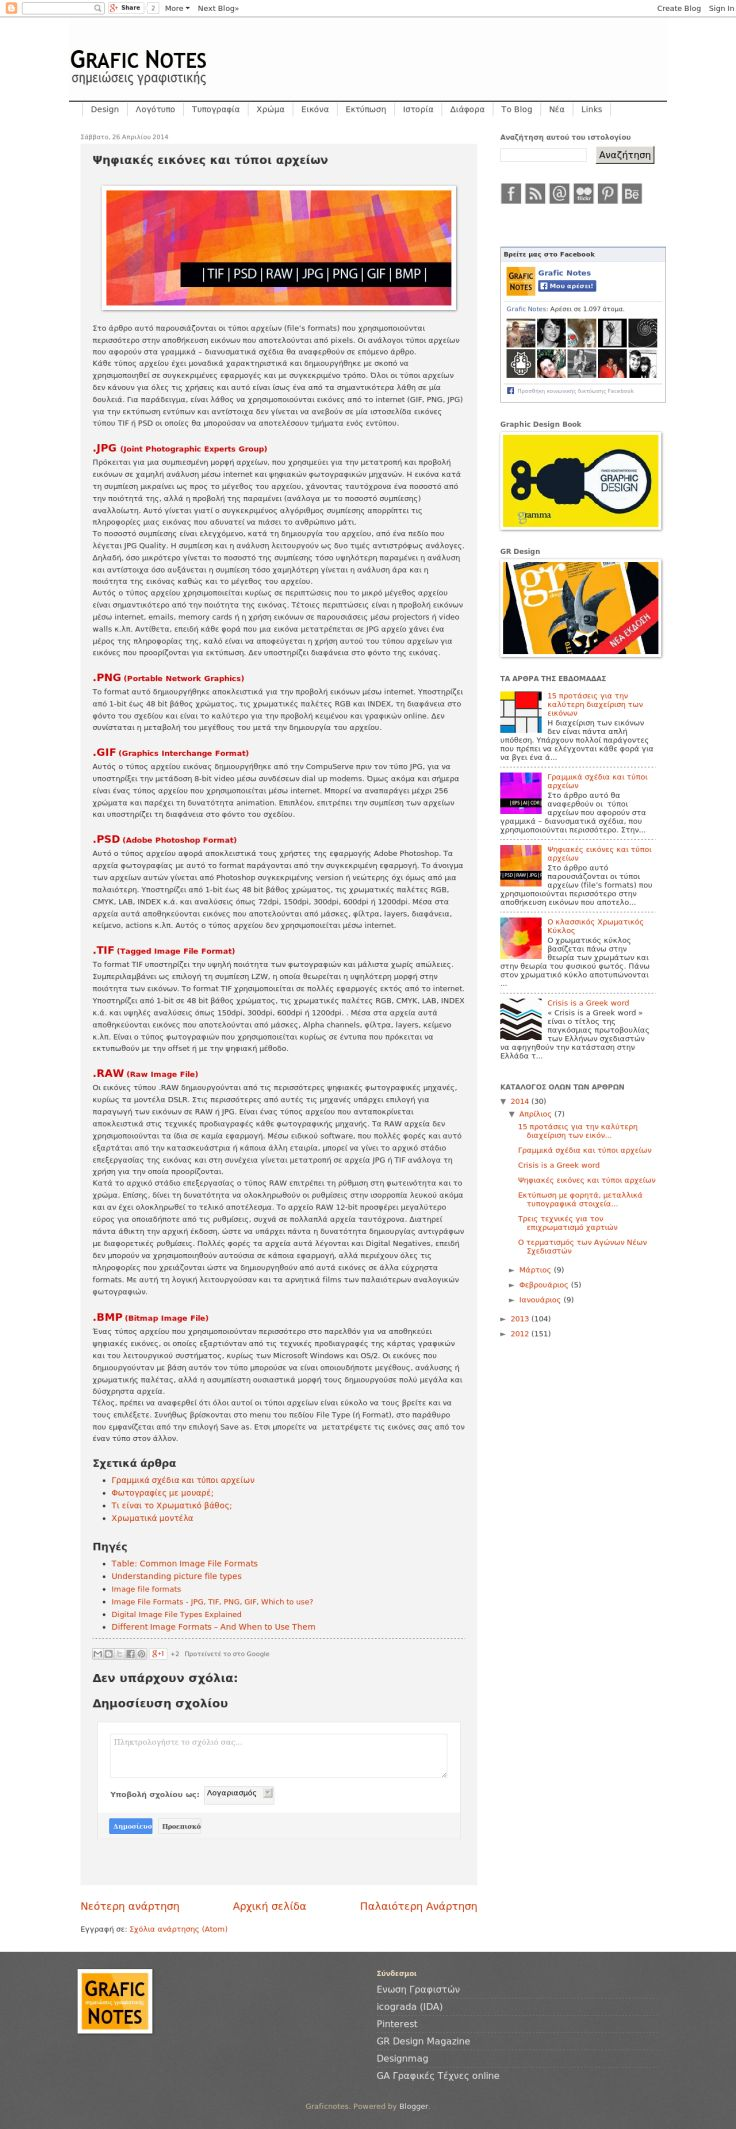 Website'http%3A%2F%2Fgraficnotes.blogspot.gr%2F2014%2F04%2Fblog-post_26.html' snapped on Page2images!